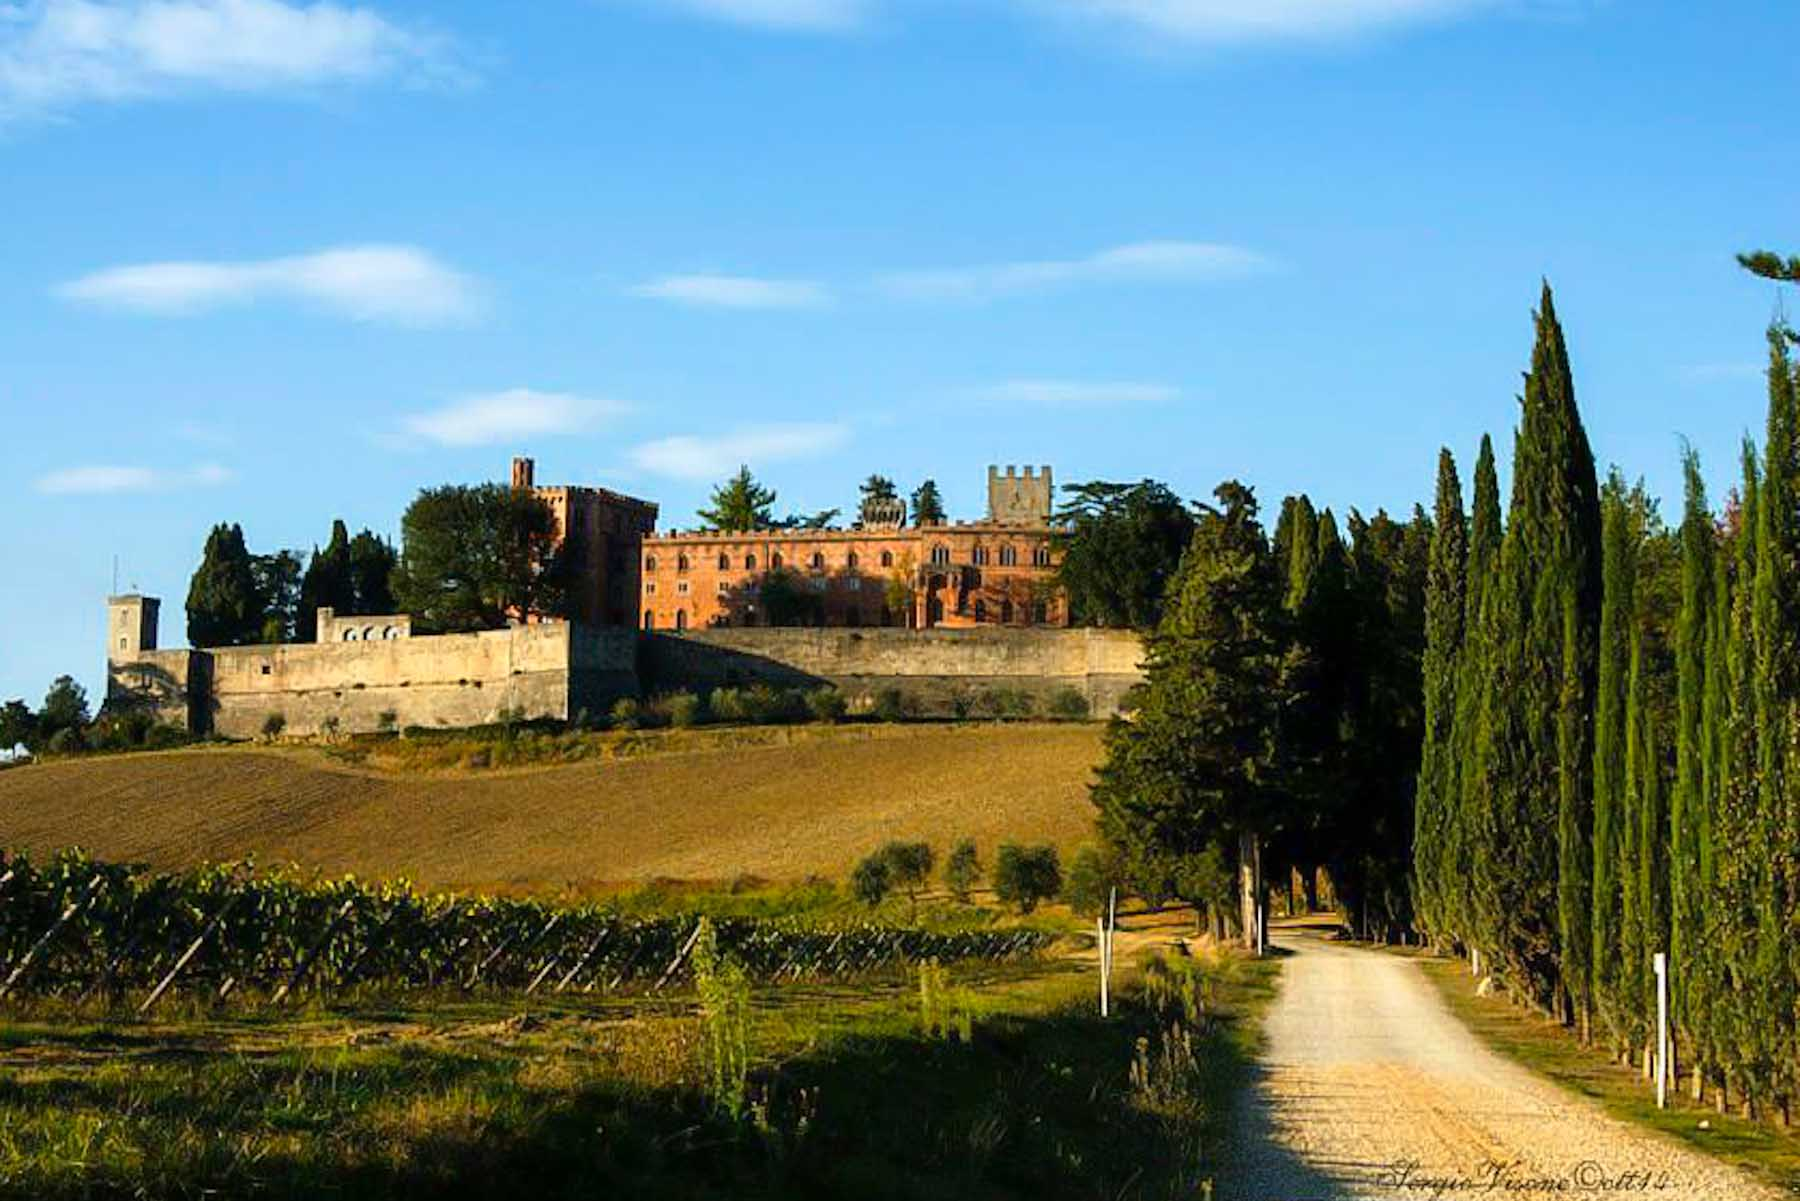 Brolio Castle - Chianti Wine Road